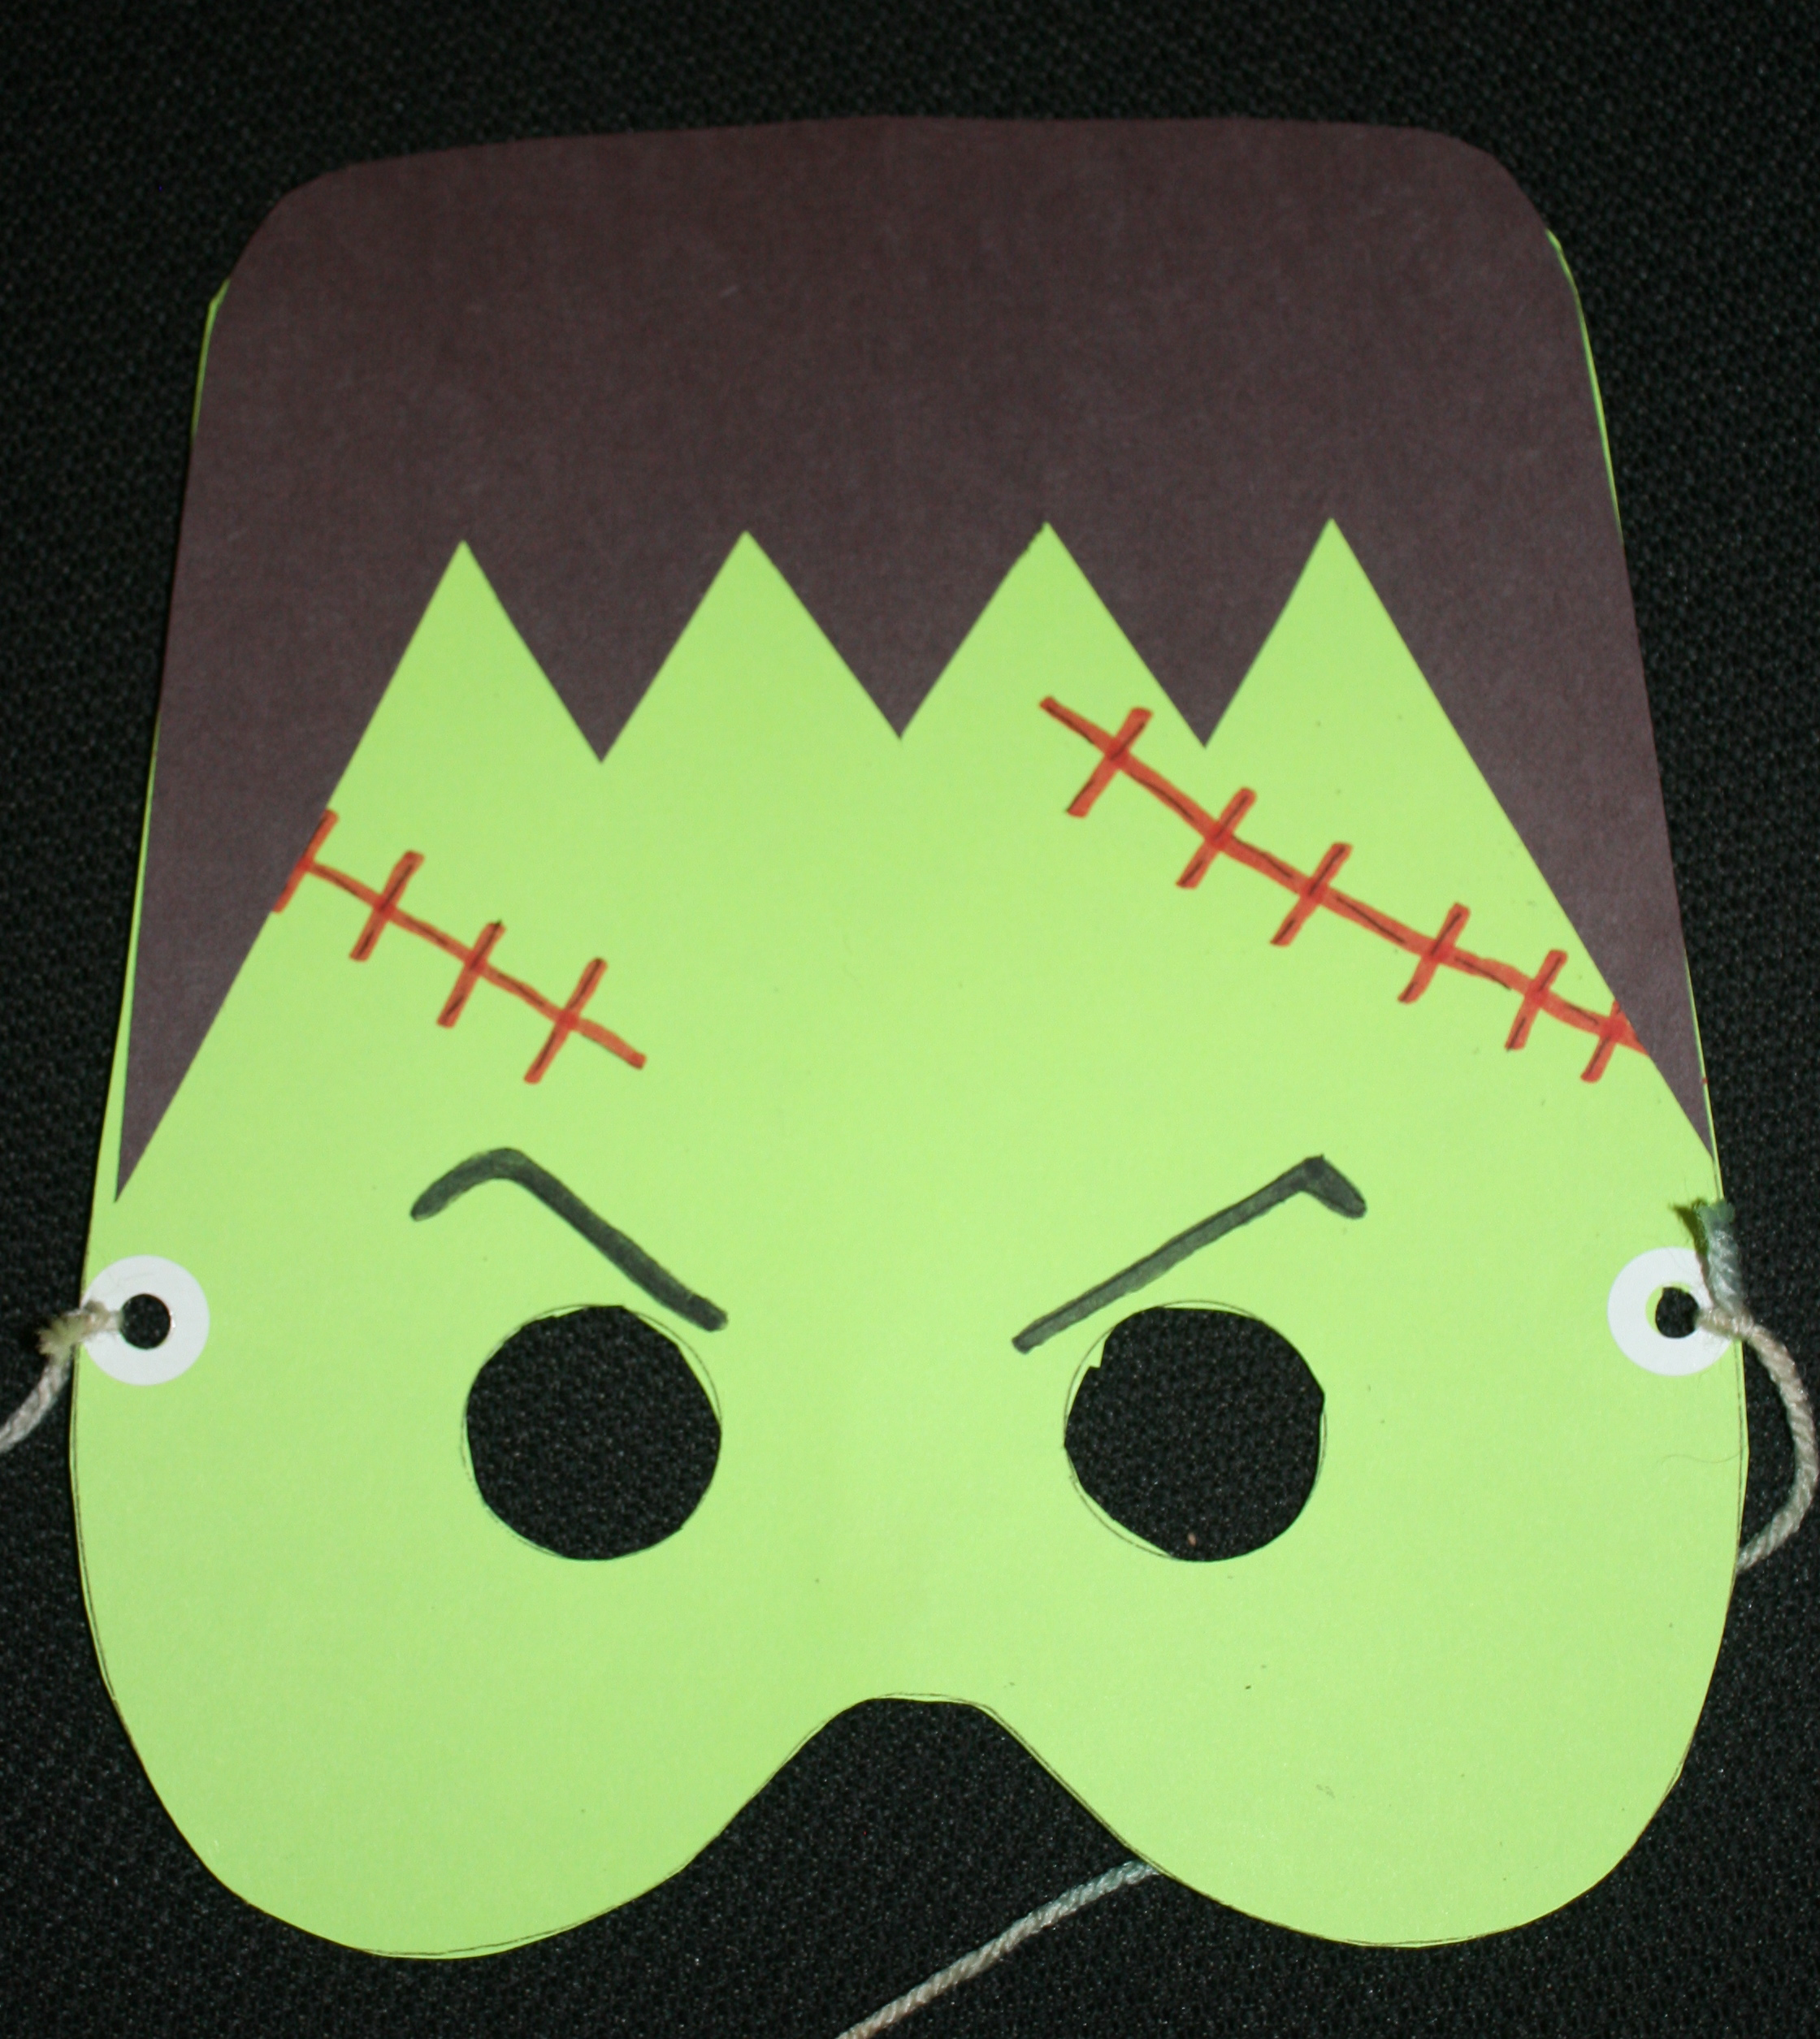 Frankenstein mask, monster mask, halloween books, monster books, october books, go away big green monster activities, sad monster glad monster activities, october activities, halloween activities,